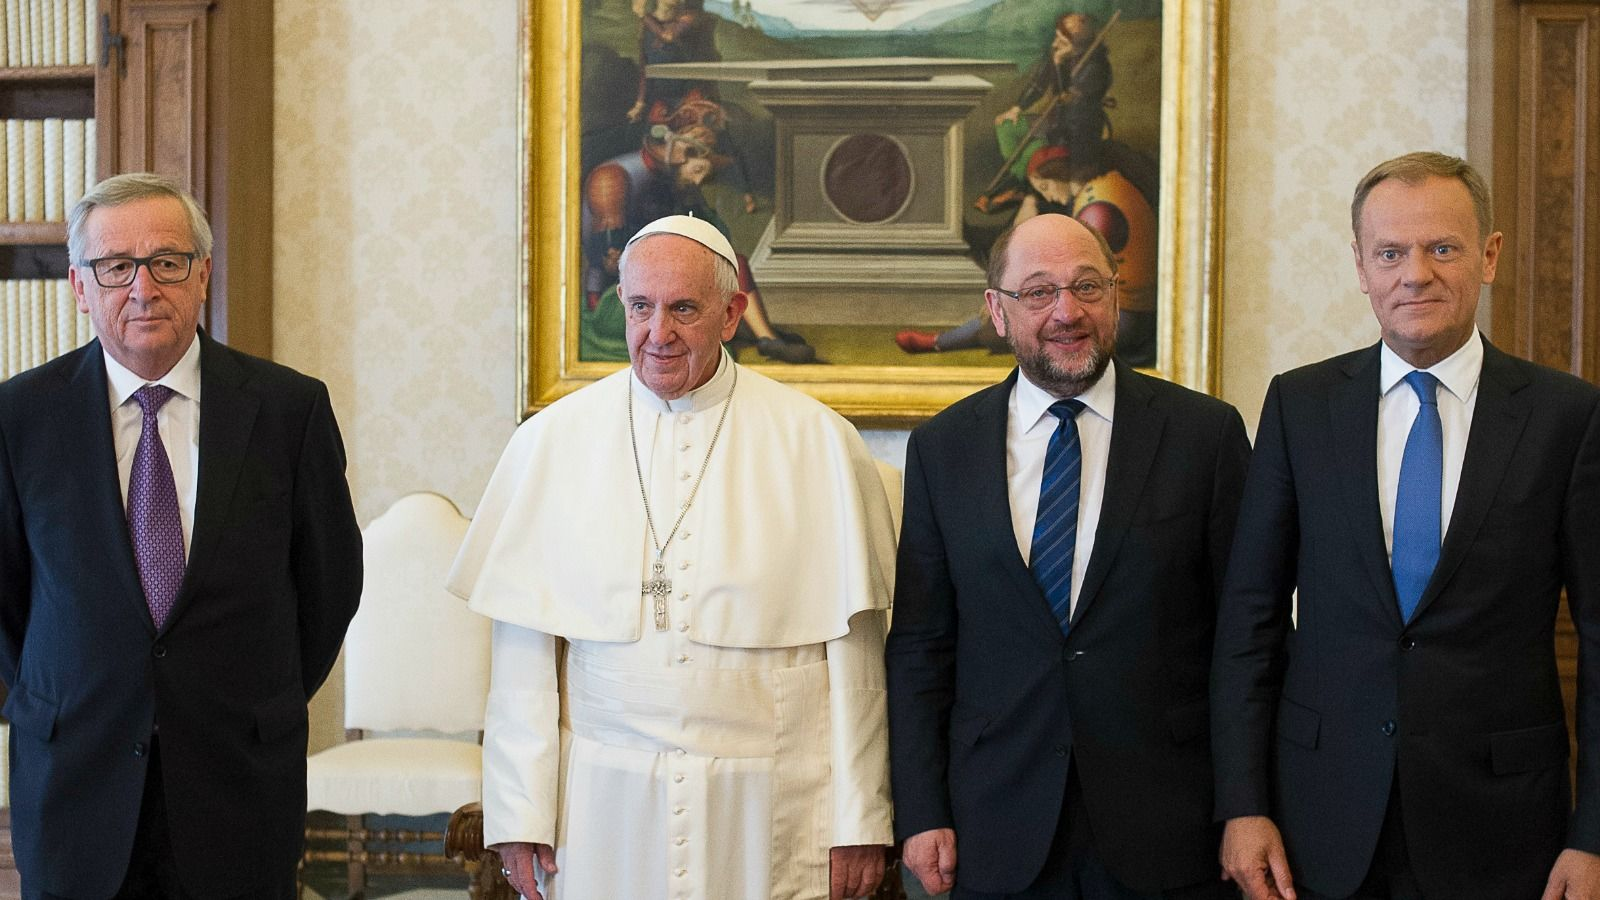 Pope Francis To Share Wisdom With Eu Leaders Ahead Of Rome